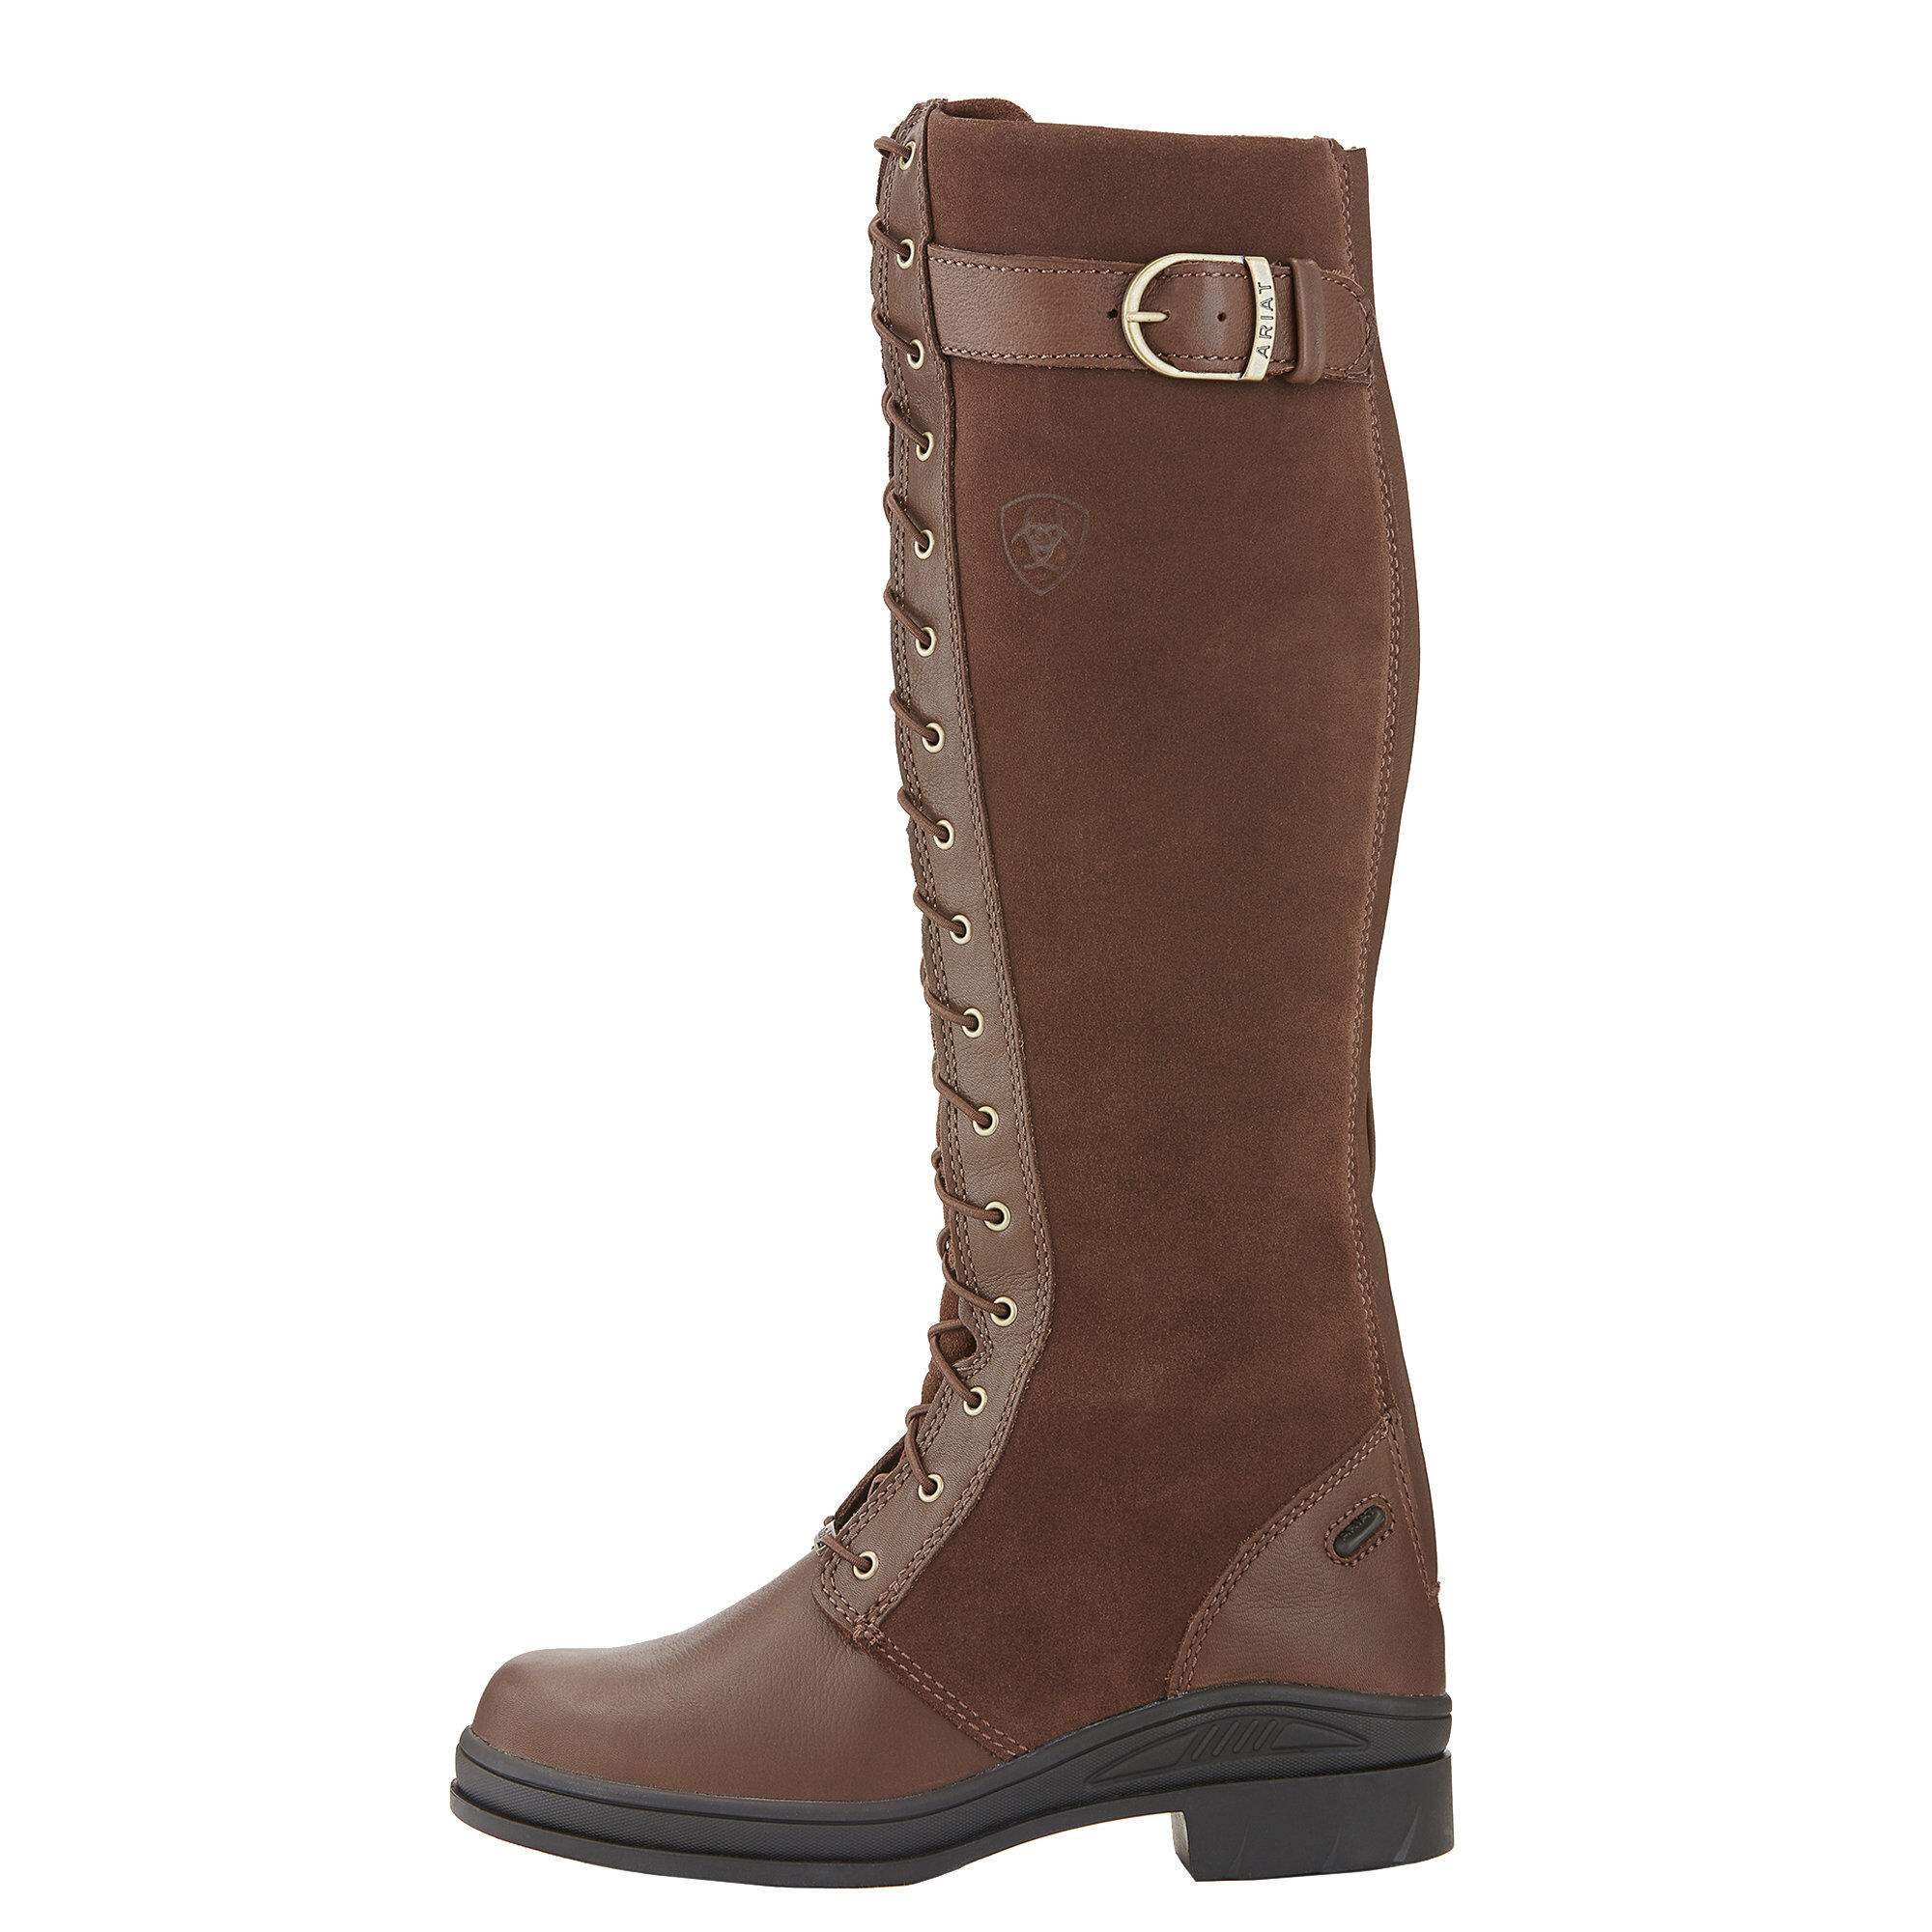 Ariat Coniston H20 Ladies Tall Boot 5.5 Z5wM56f2